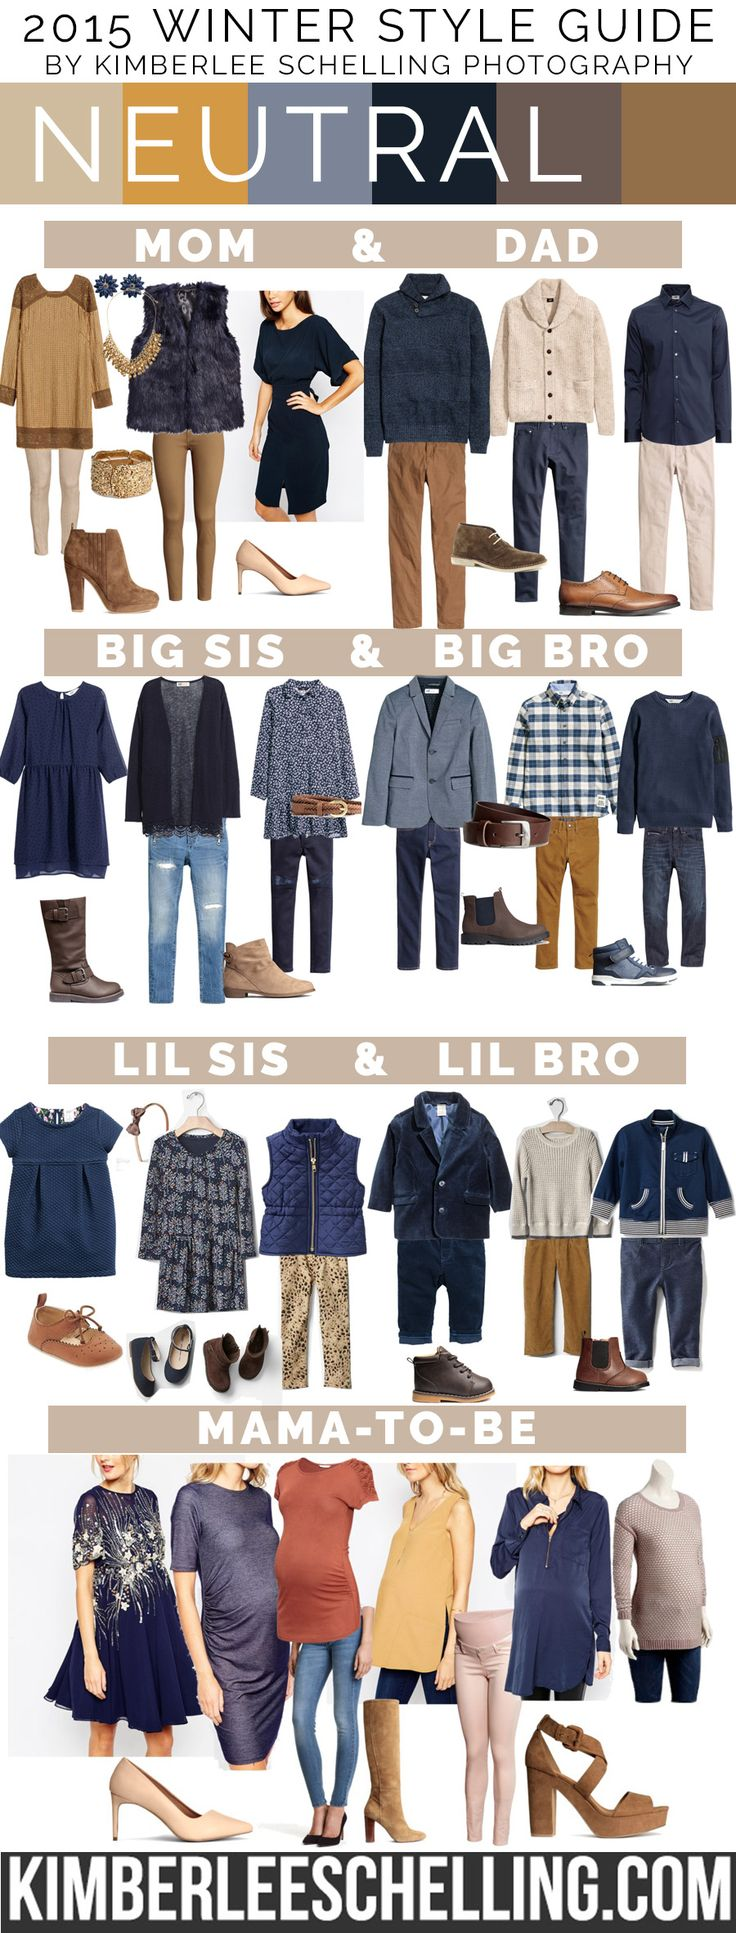 NEW - Updated Neutral style board for 2015! What to wear for your family photos, including mom, dad, big sis & bro, little sis & bro, and also some maternity style outfit ideas! By Kimberlee Schelling Photography